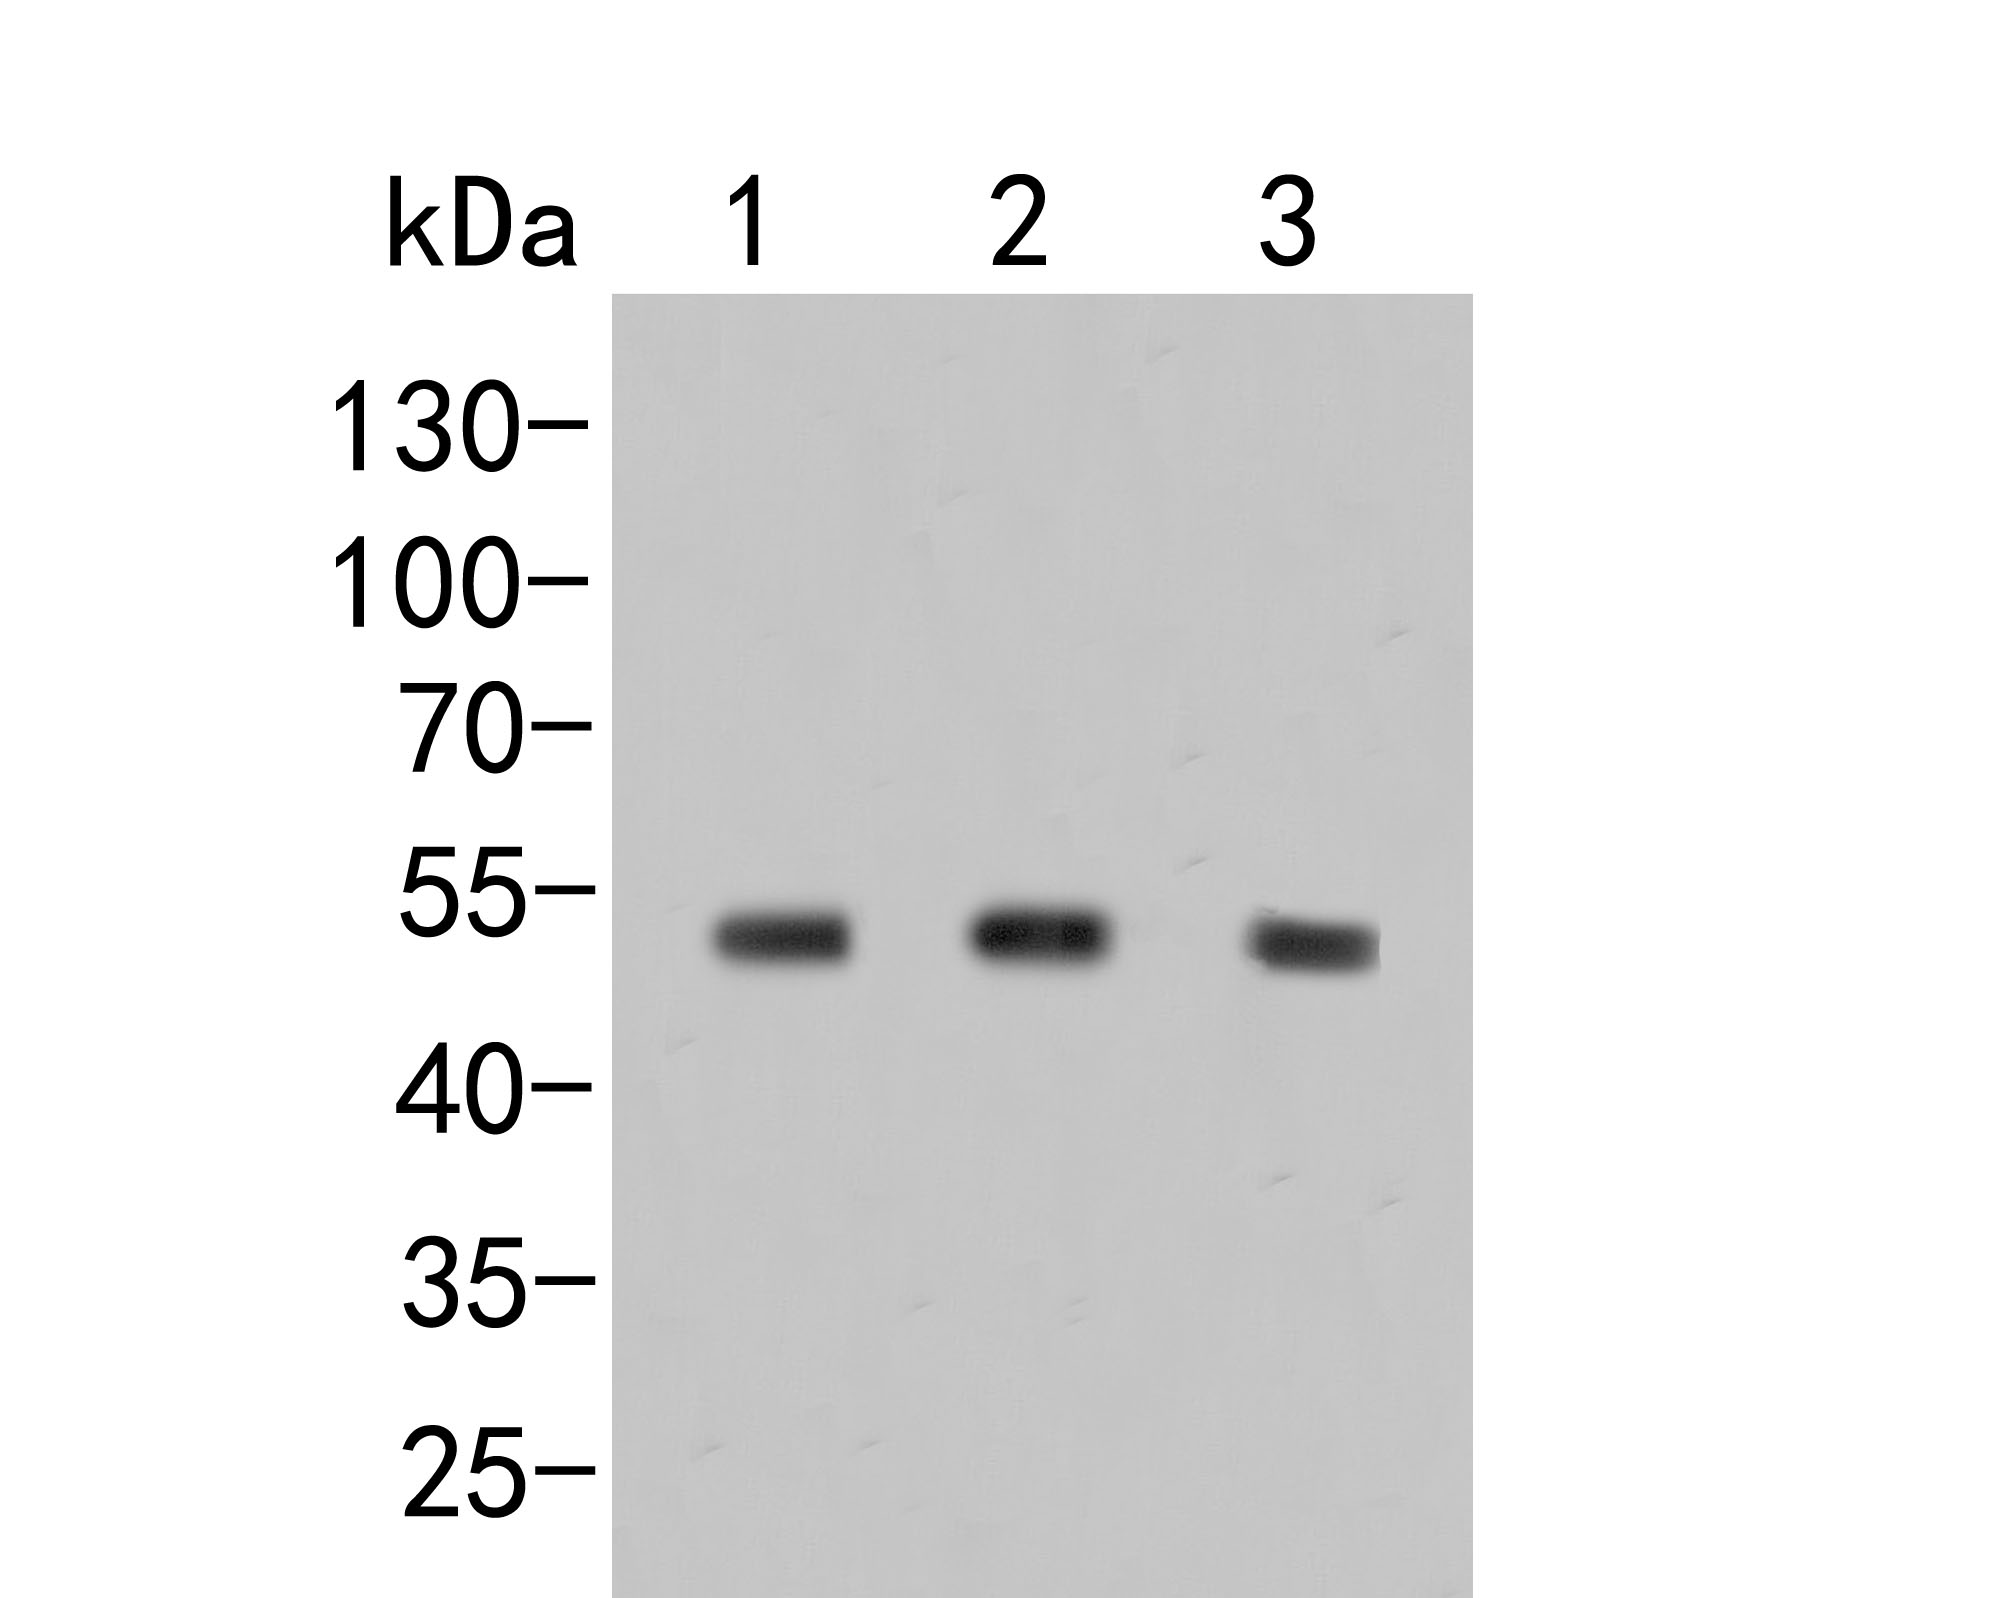 Western blot analysis of Dysbindin on different lysates. Proteins were transferred to a PVDF membrane and blocked with 5% BSA in PBS for 1 hour at room temperature. The primary antibody (ER2001-26, 1/500) was used in 5% BSA at room temperature for 2 hours. Goat Anti-Rabbit IgG - HRP Secondary Antibody (HA1001) at 1:5,000 dilution was used for 1 hour at room temperature.<br /> Positive control: <br /> Lane 1: Daudi cell lysate<br /> Lane 2: MCF-7 cell lysate<br /> Lane 3: HL-60 cell lysate